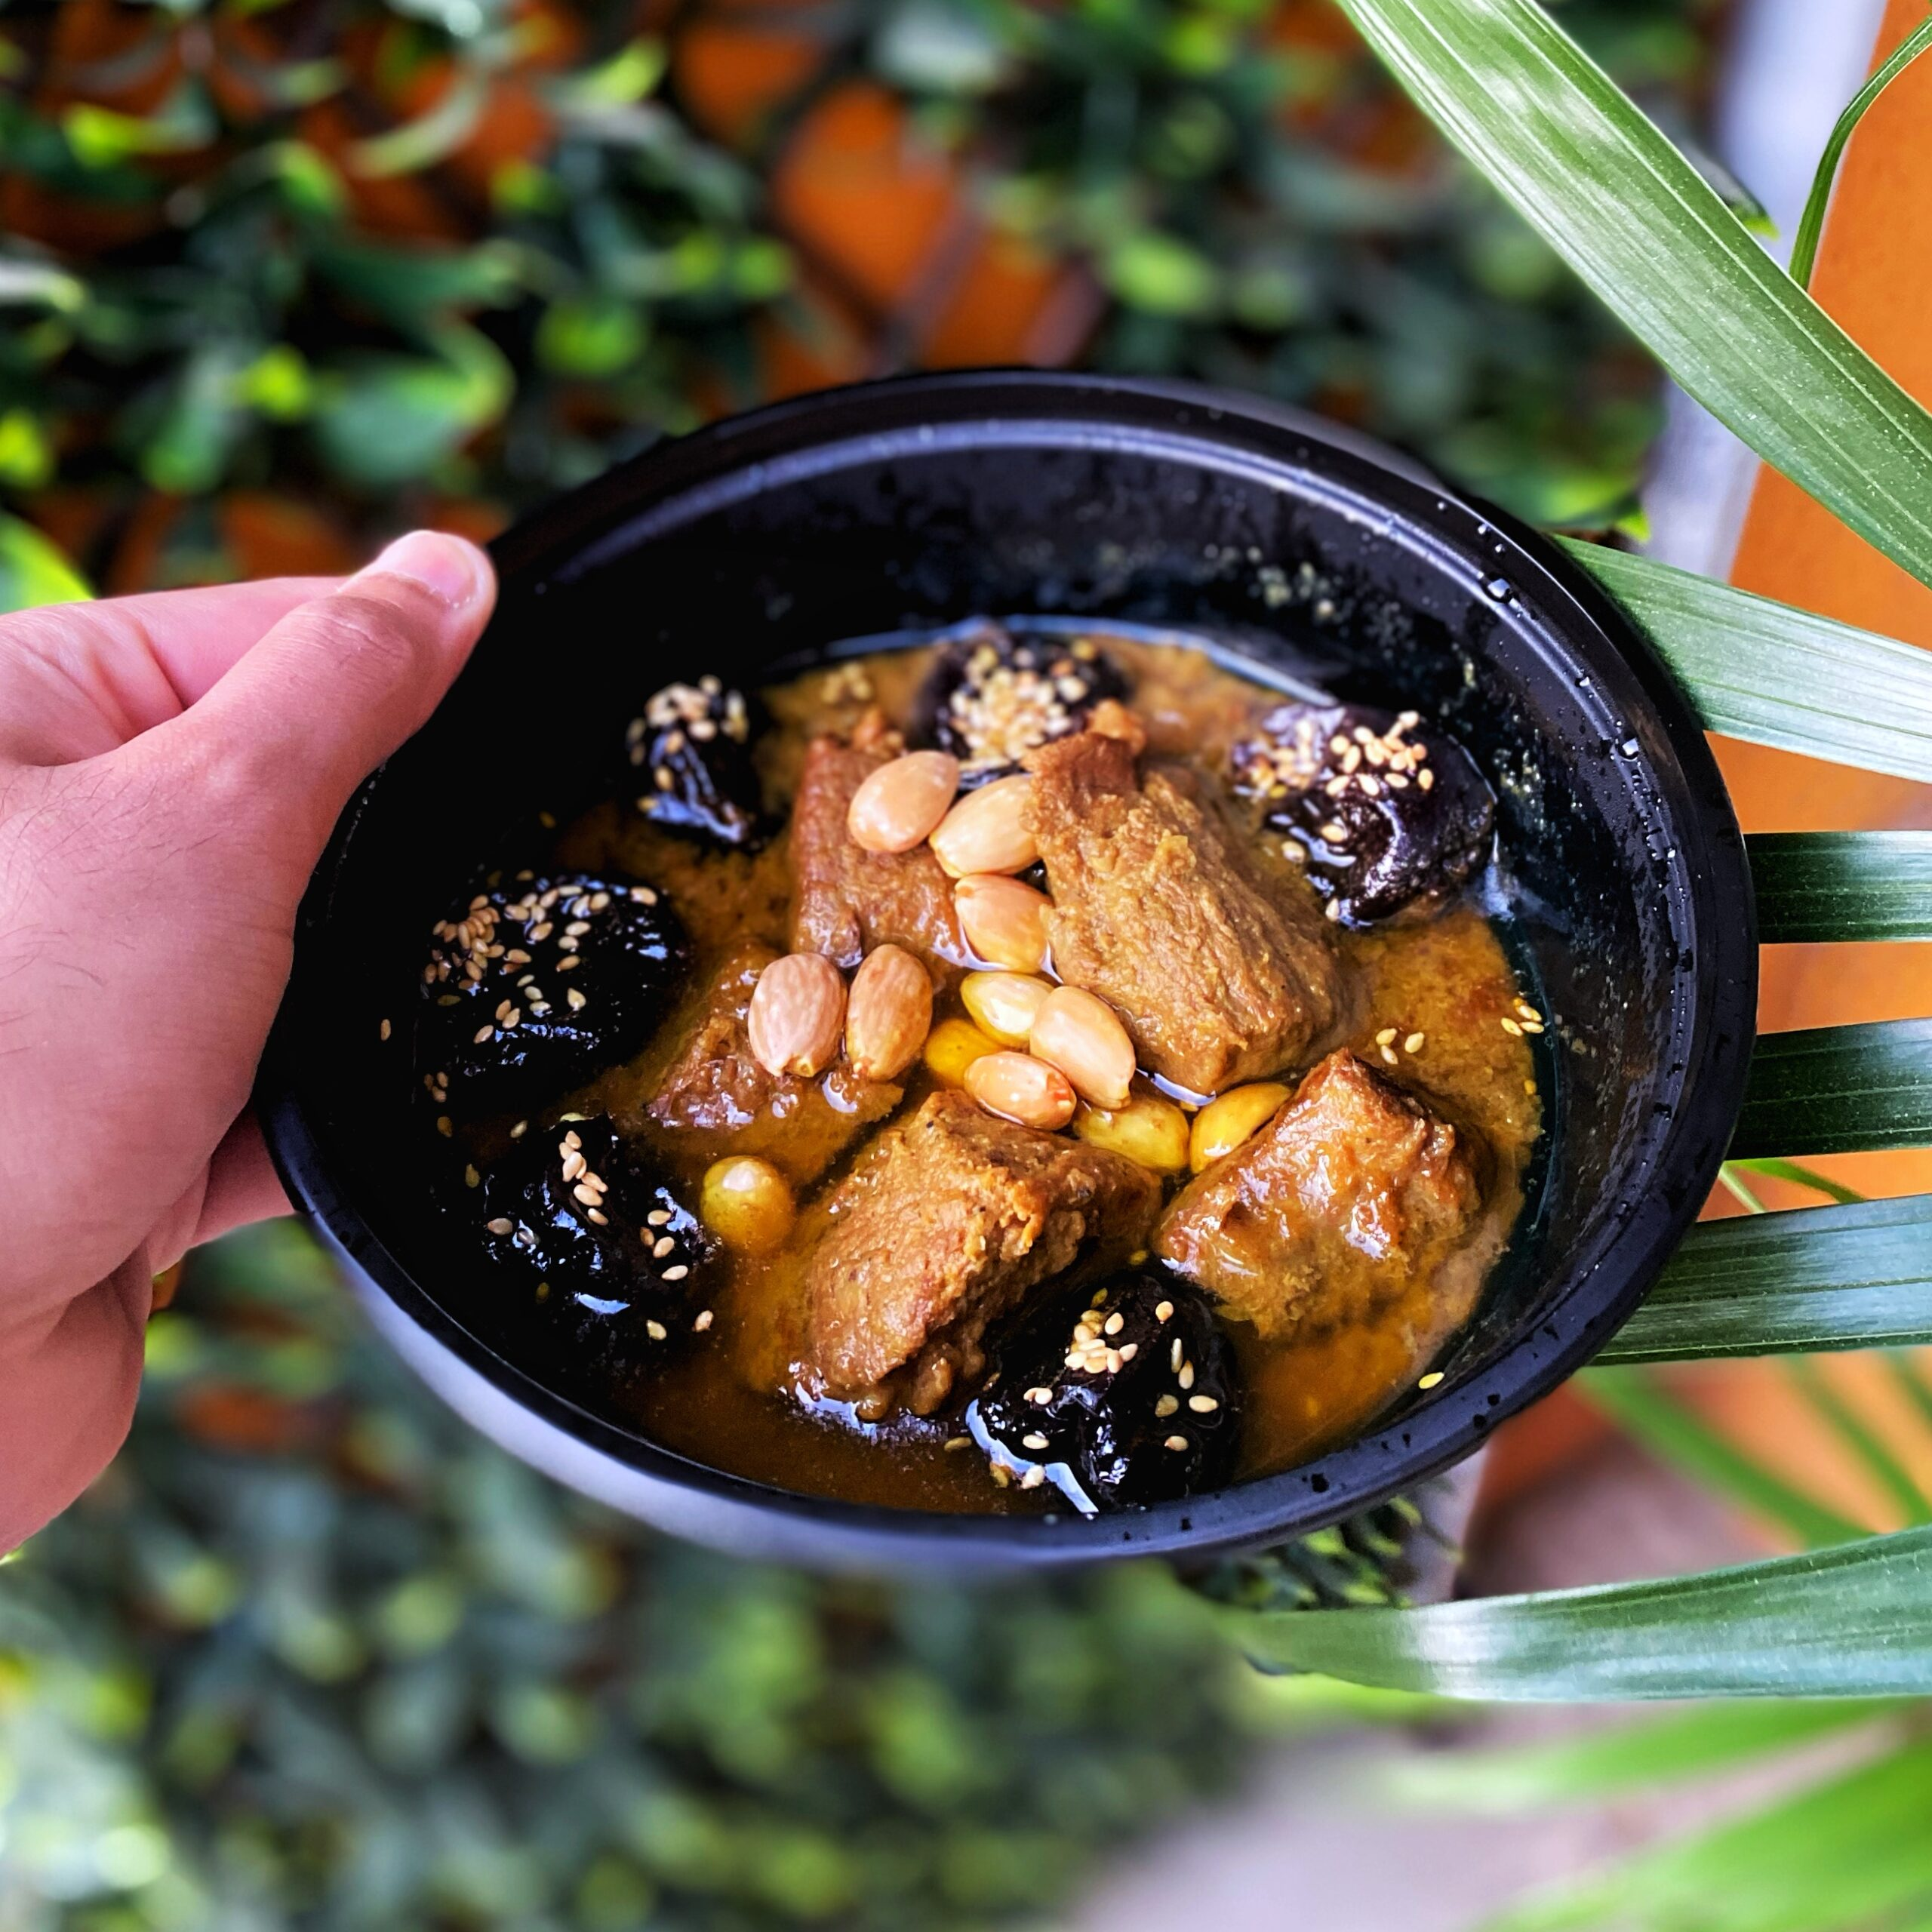 Lamb tajine with caramelized prunes and almonds at Imlil Moroccan Cuisine, a new restaurant in Toronto